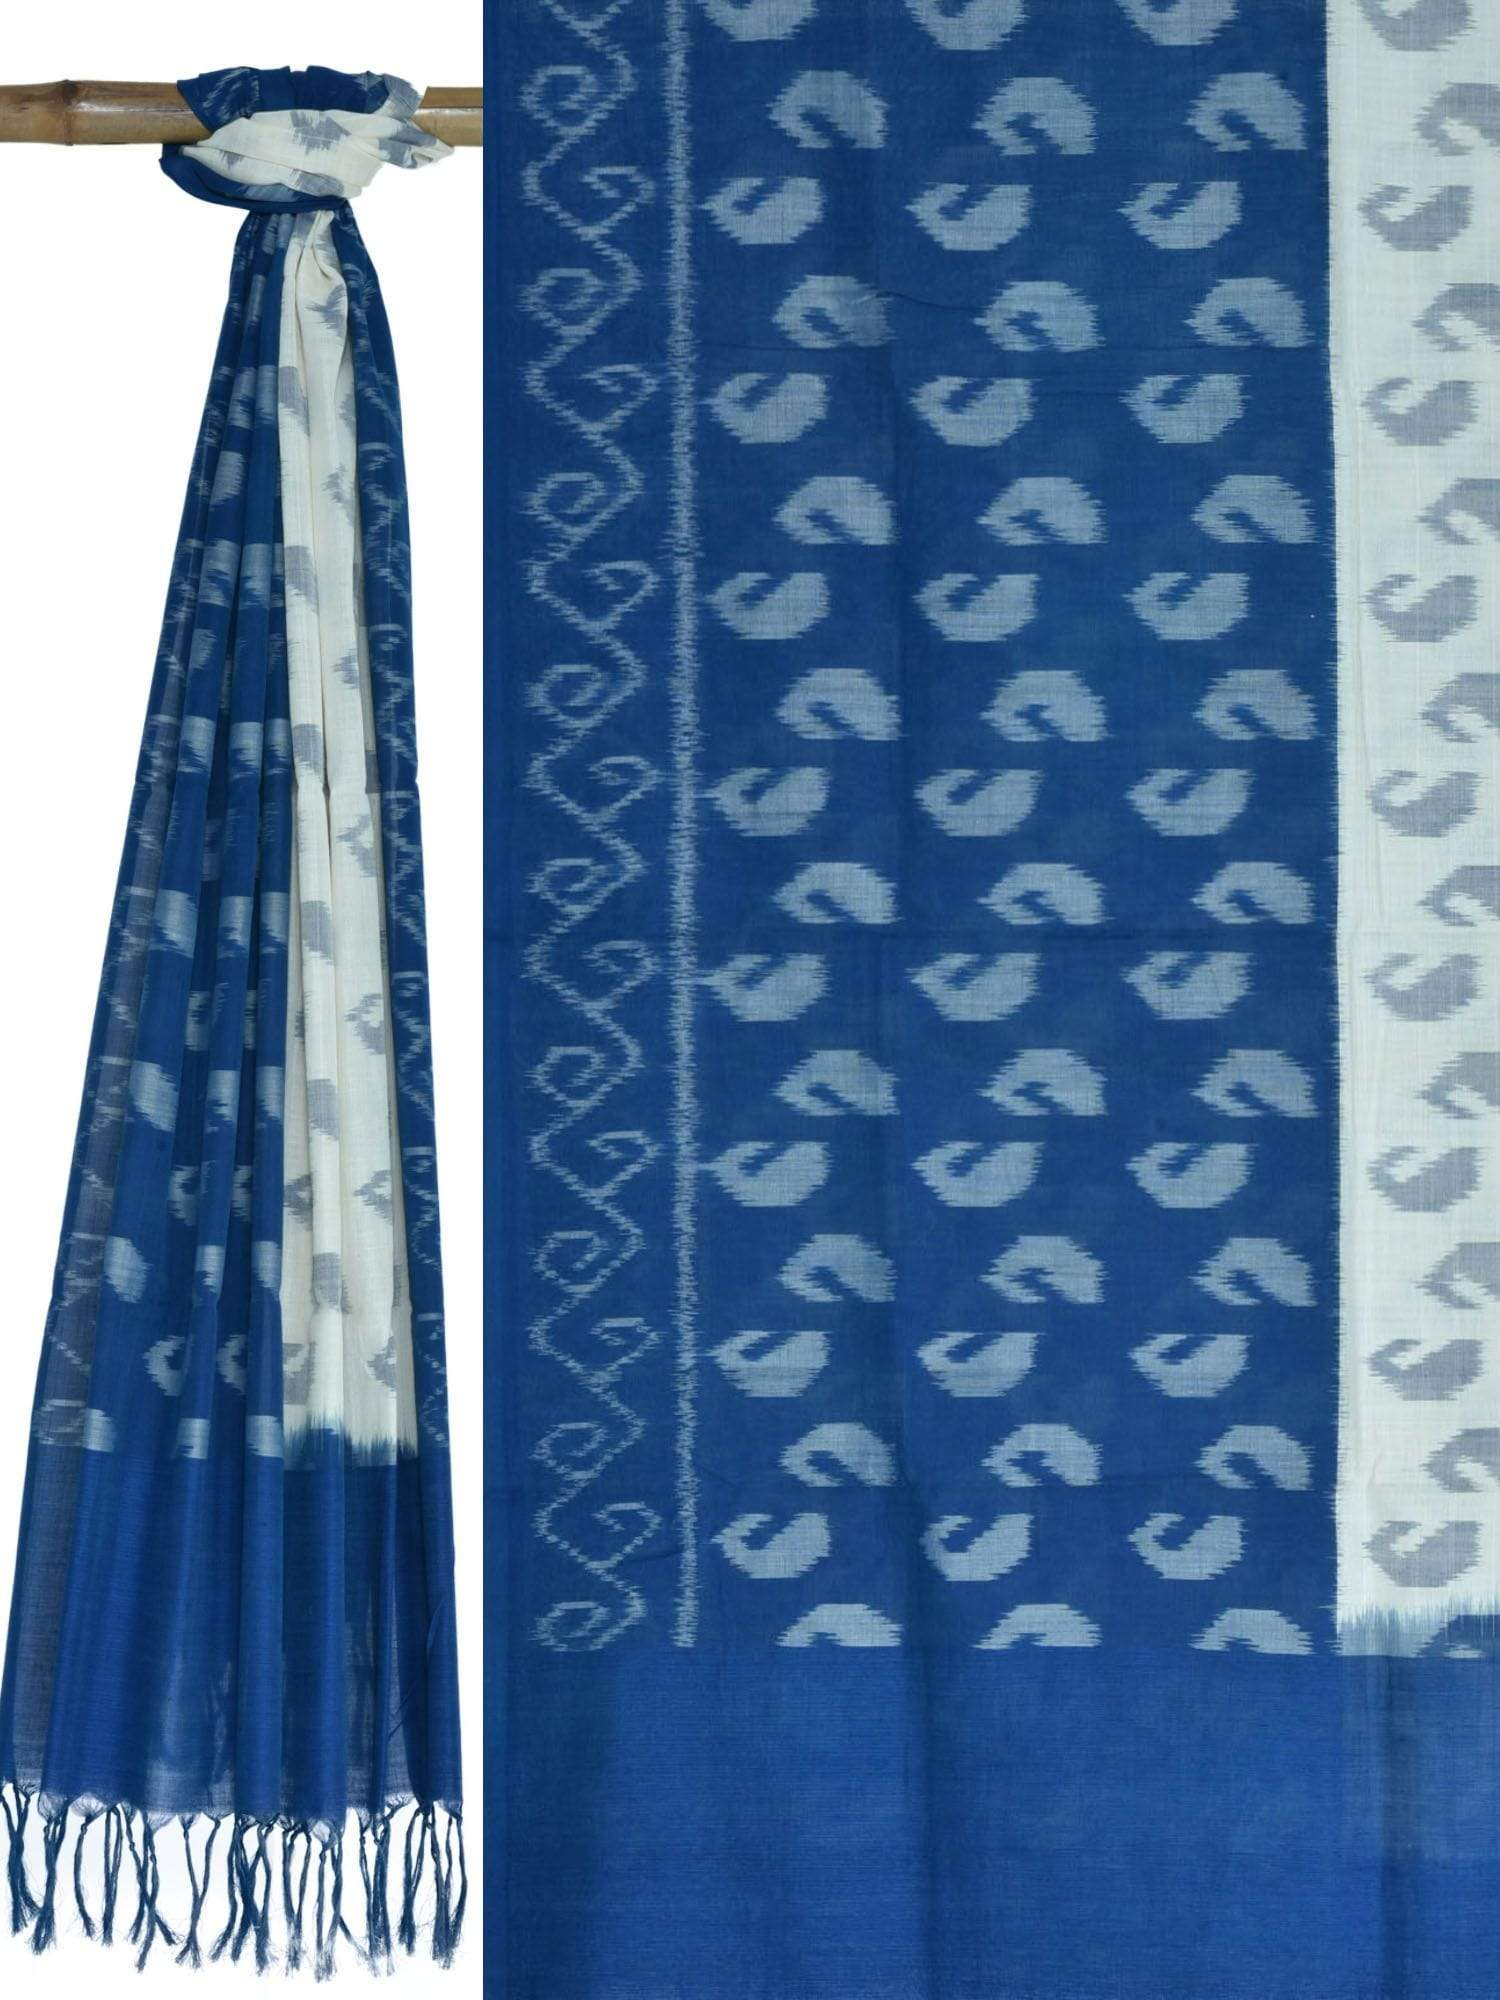 Blue and White Pochampally Ikat Cotton Handloom Dupatta with Mango Design ds1614